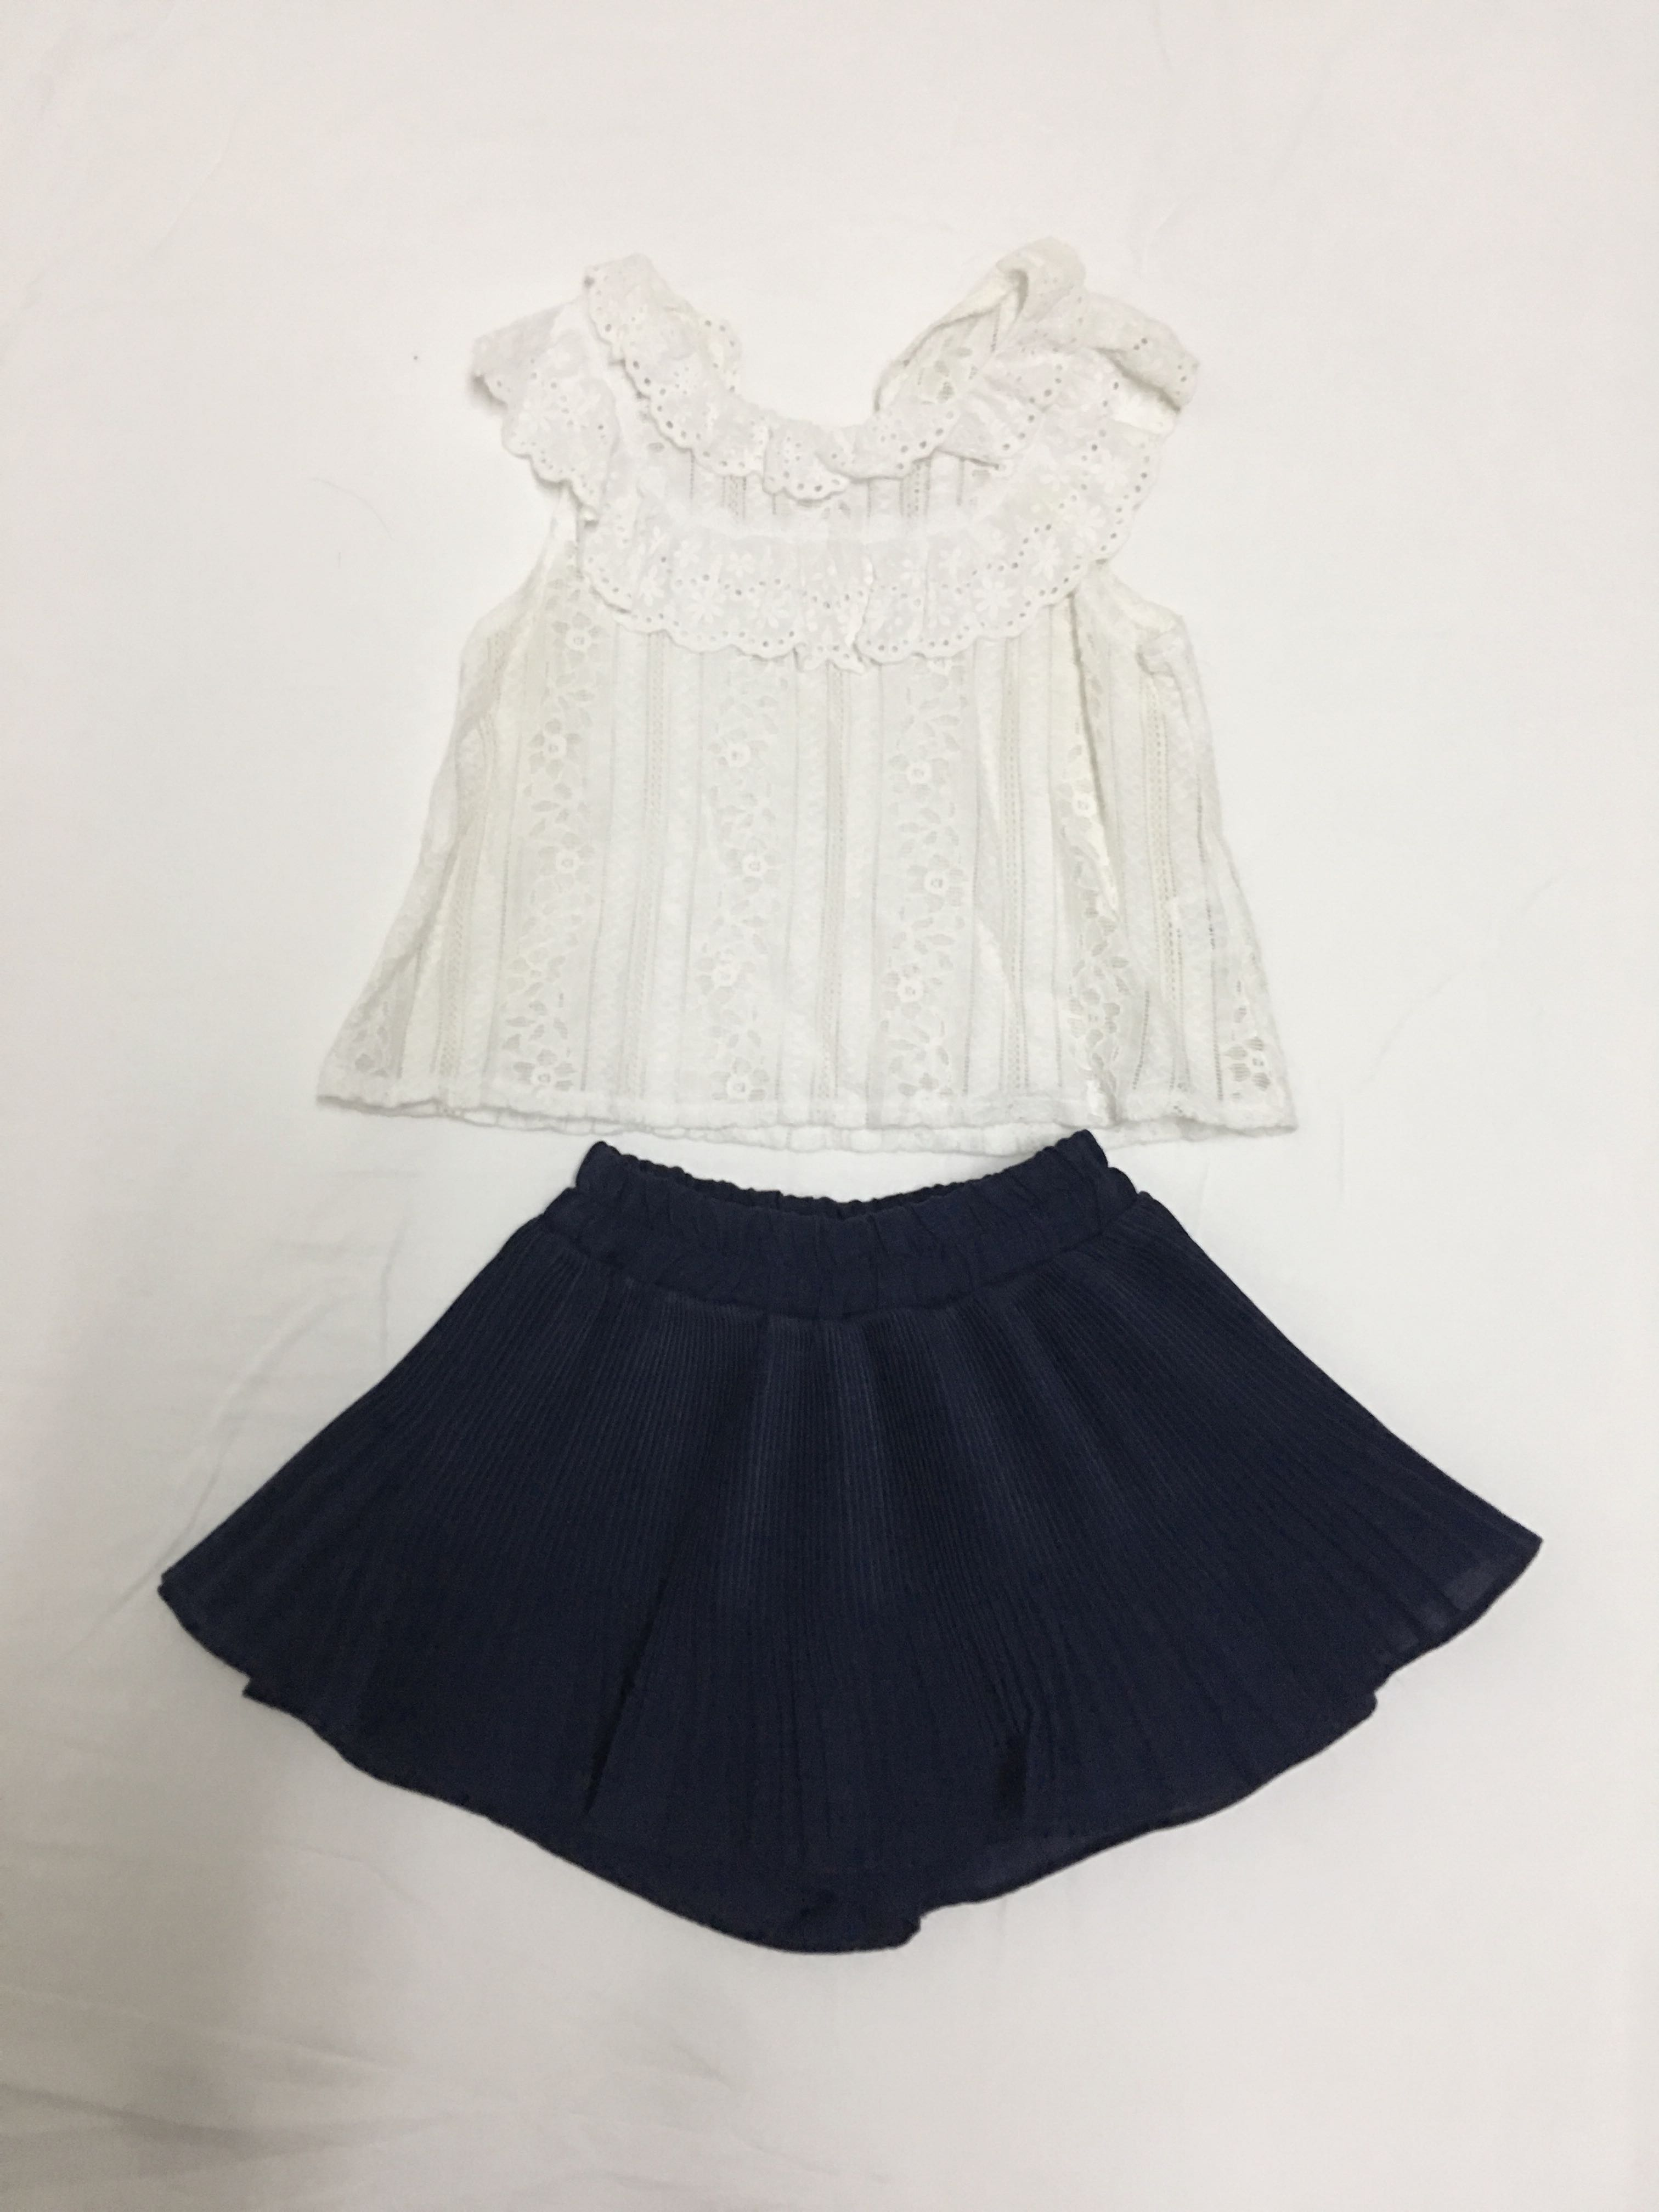 57ac0ec216 Home · Babies   Kids · Girls  Apparel · 1 to 3 Years. photo photo photo  photo photo